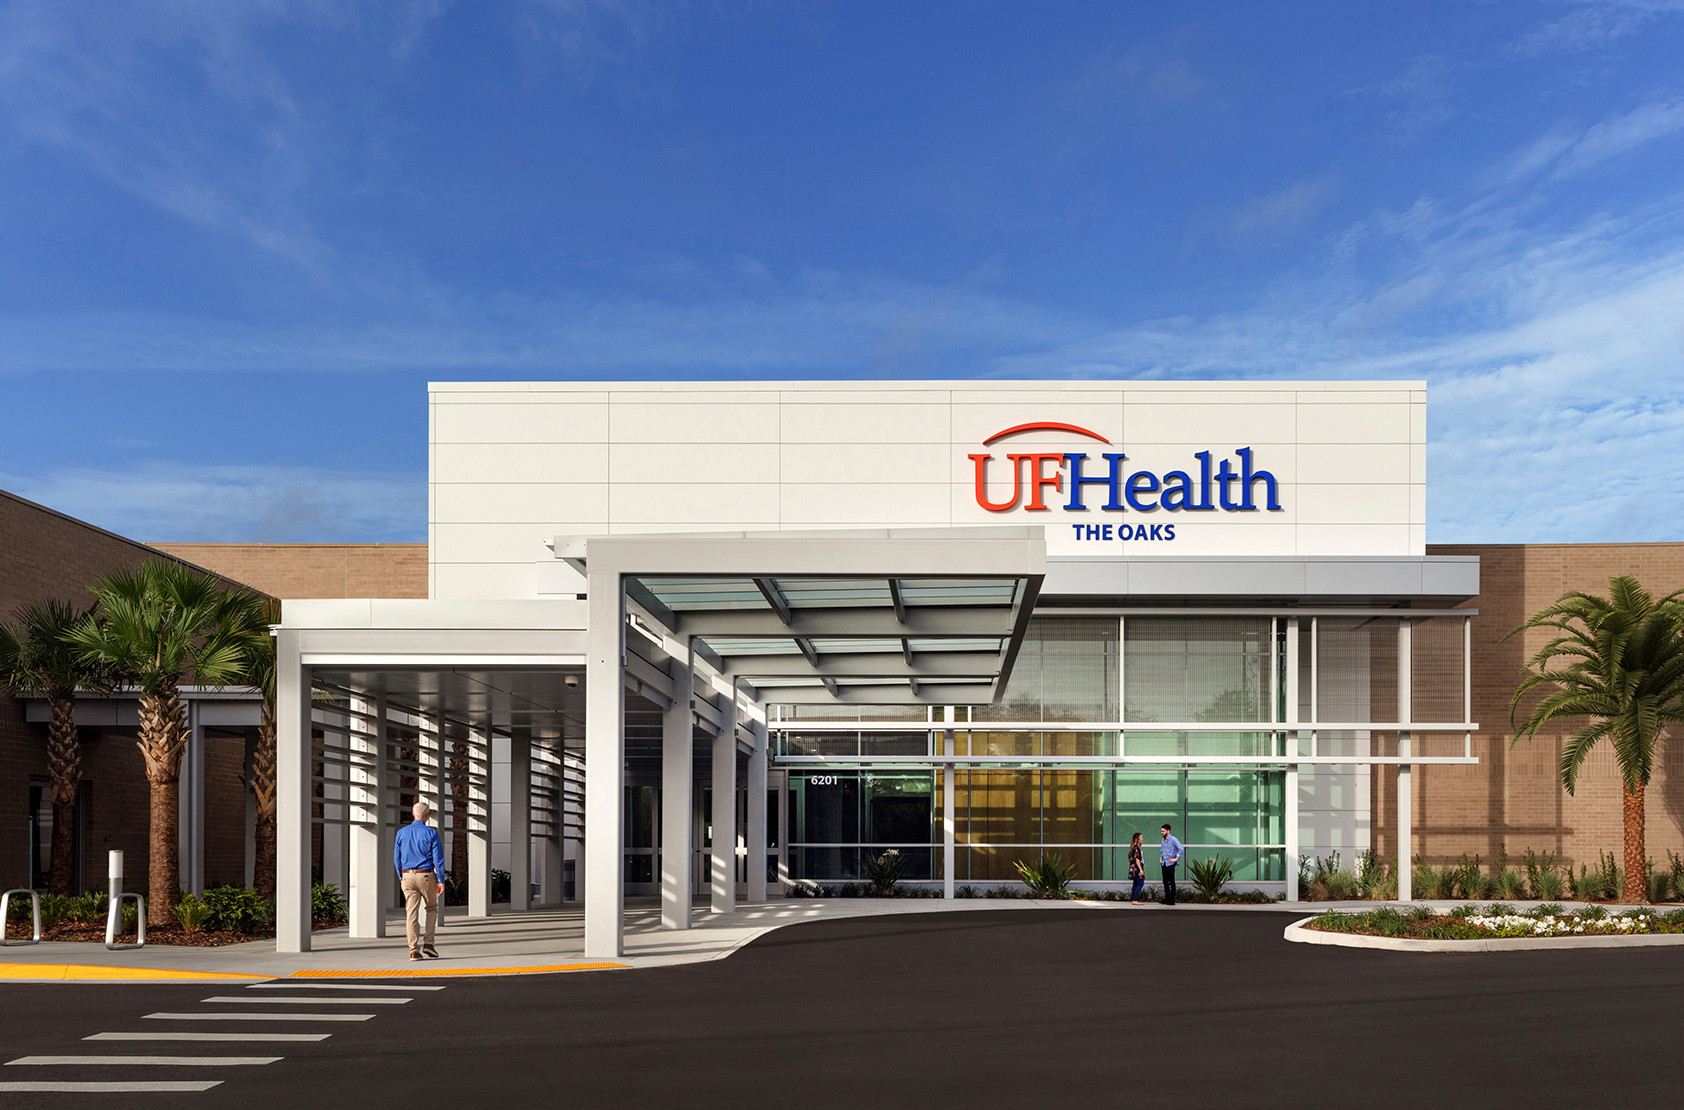 UF Health - The Oaks